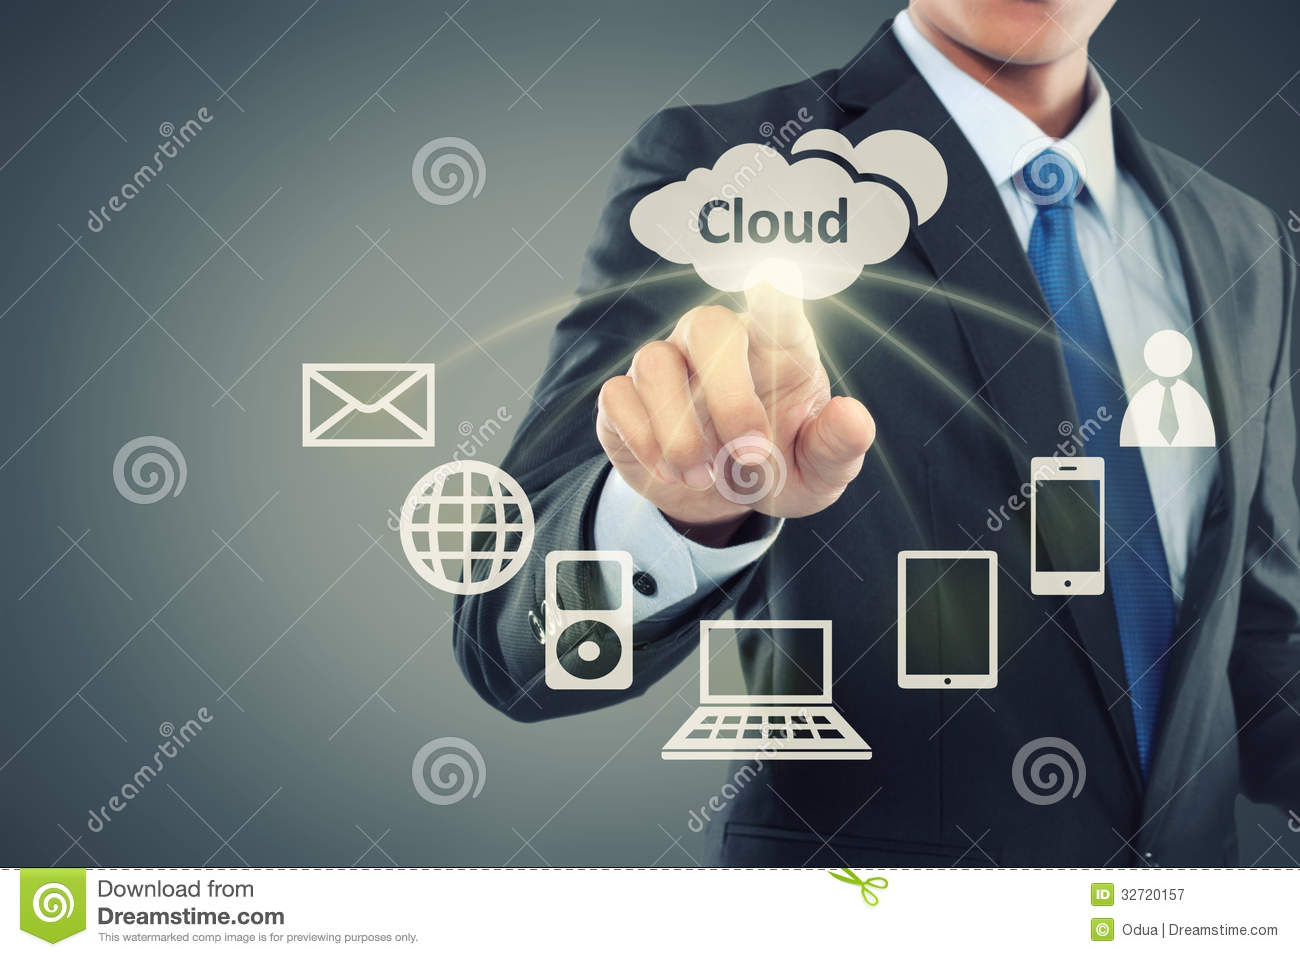 business-man-pointing-cloud-computing-virtual-background-32720157.jpg